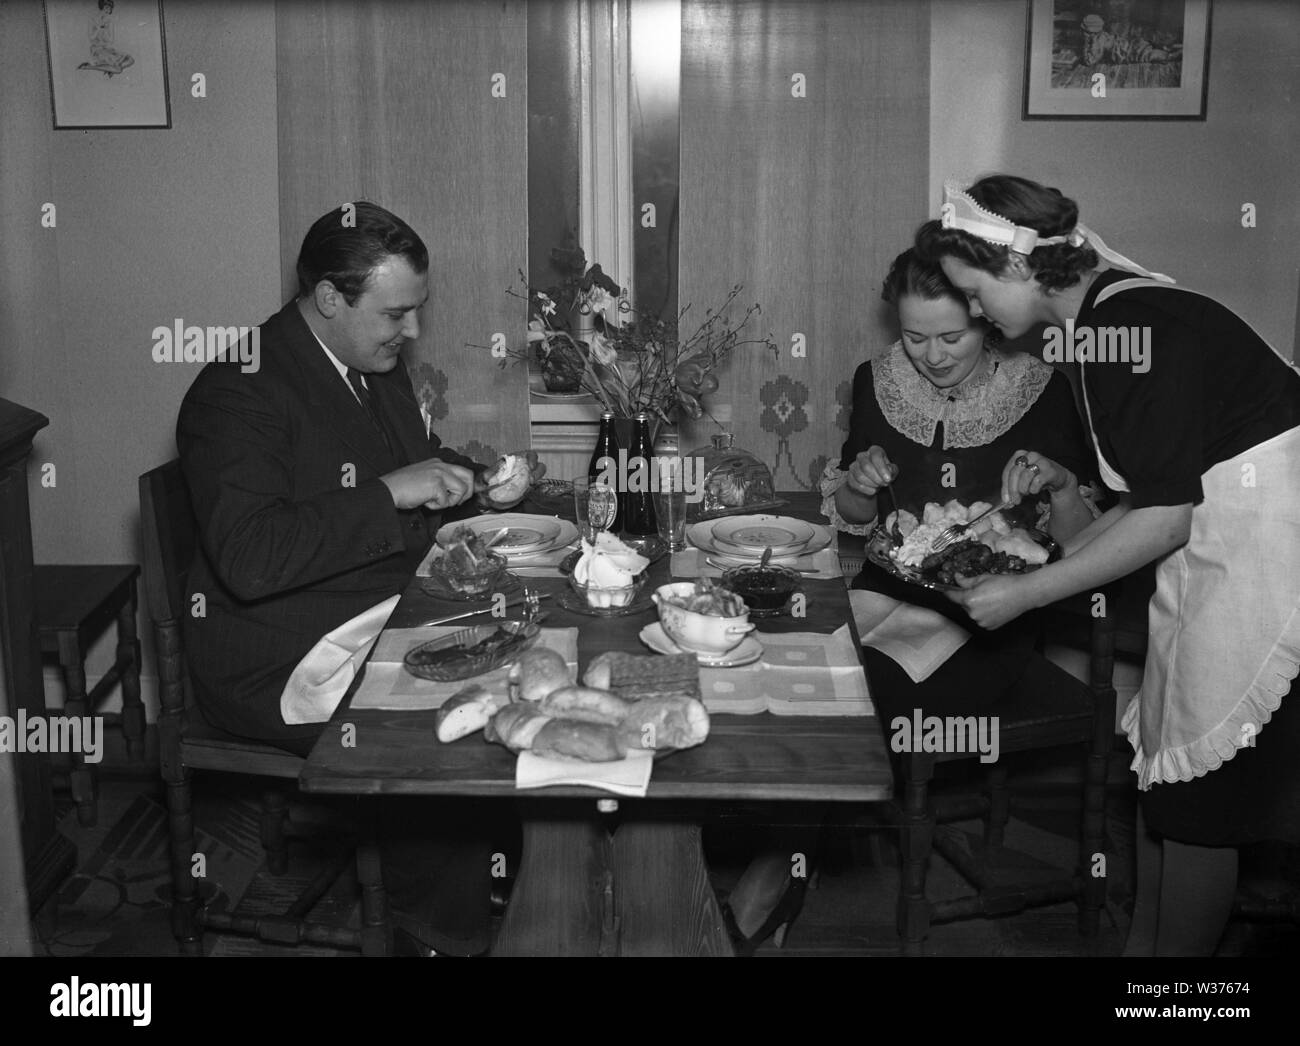 Living in the 1940s. A young woman working as a maid is serving dinner to a man and woman sitting at the table. She is neatly dressed in a white apron.   Sweden 1940. Kristoffersson ref 55-7 - Stock Image